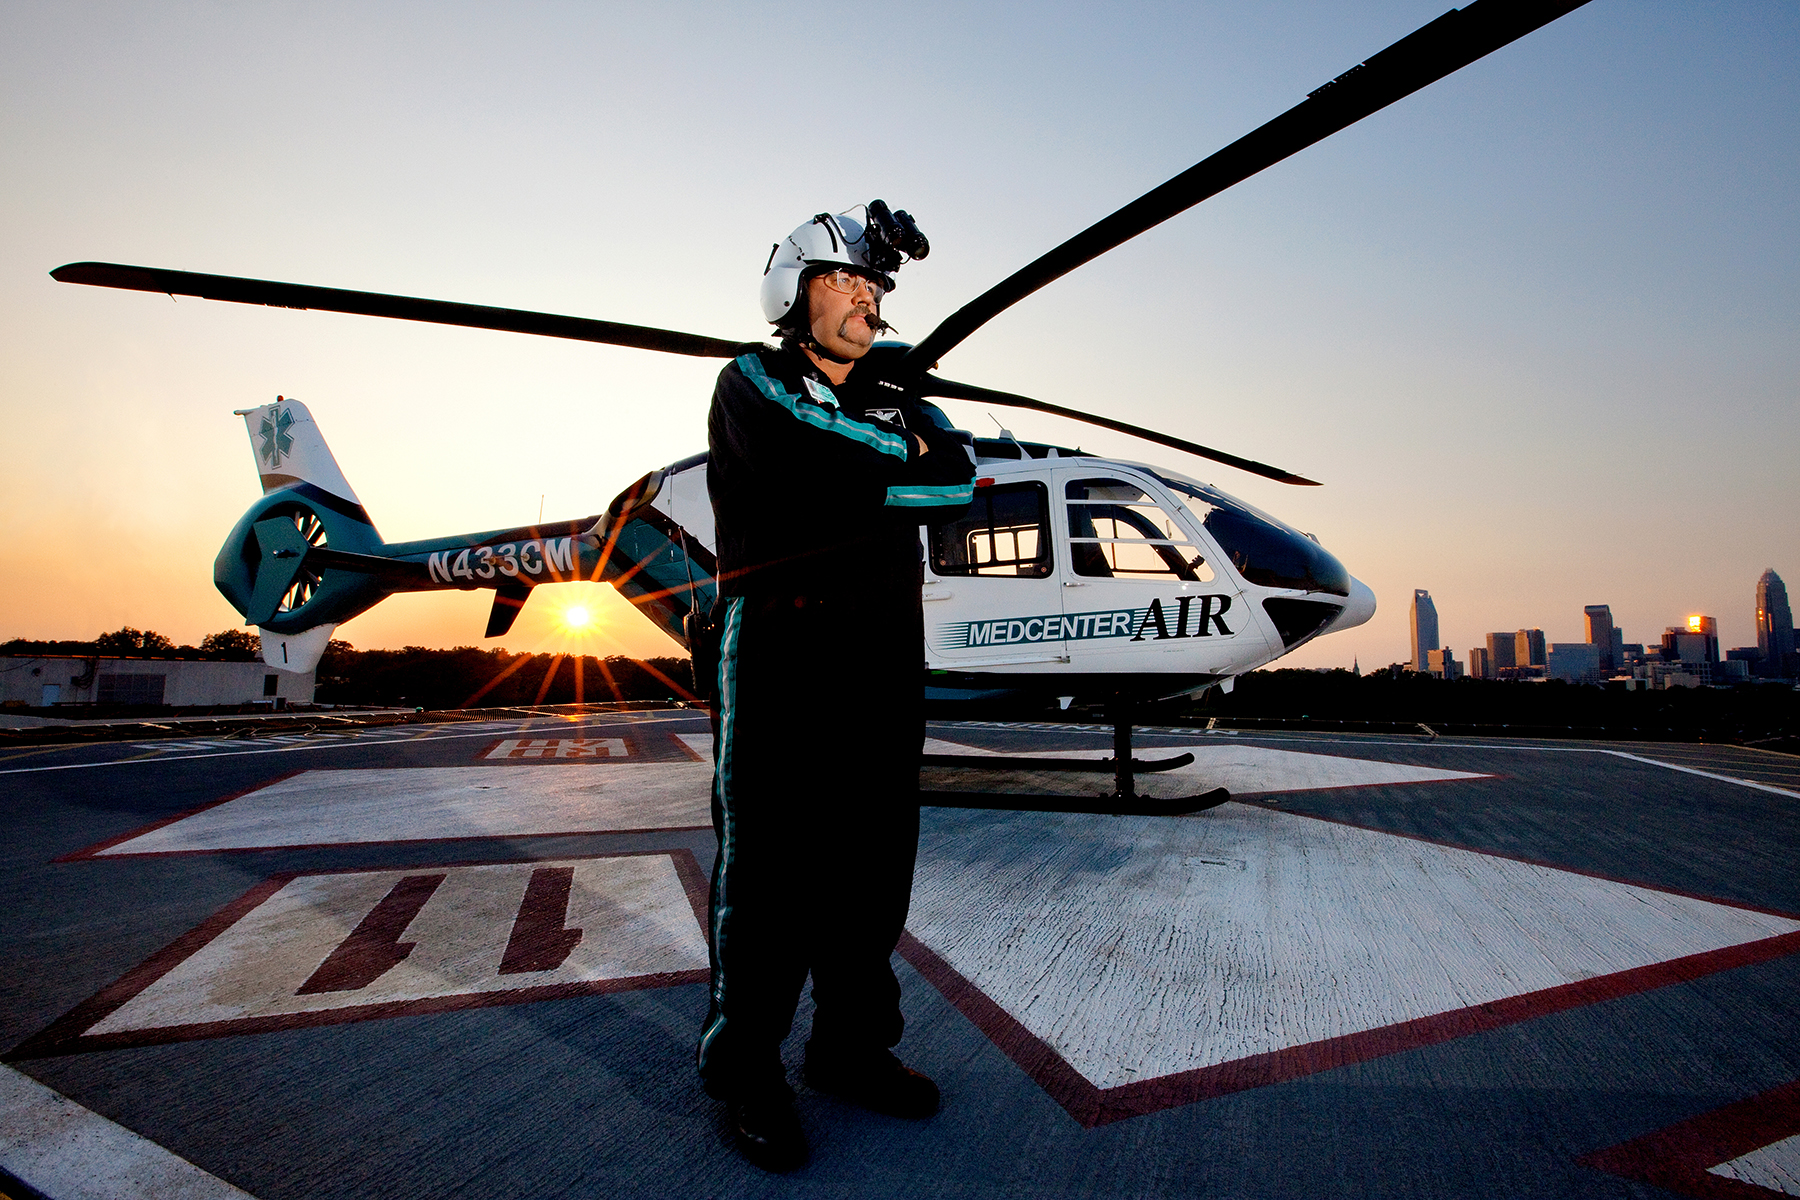 Photography of the MedCenter Air team at Carolinas Medical Center, in Charlotte, North Carolina.